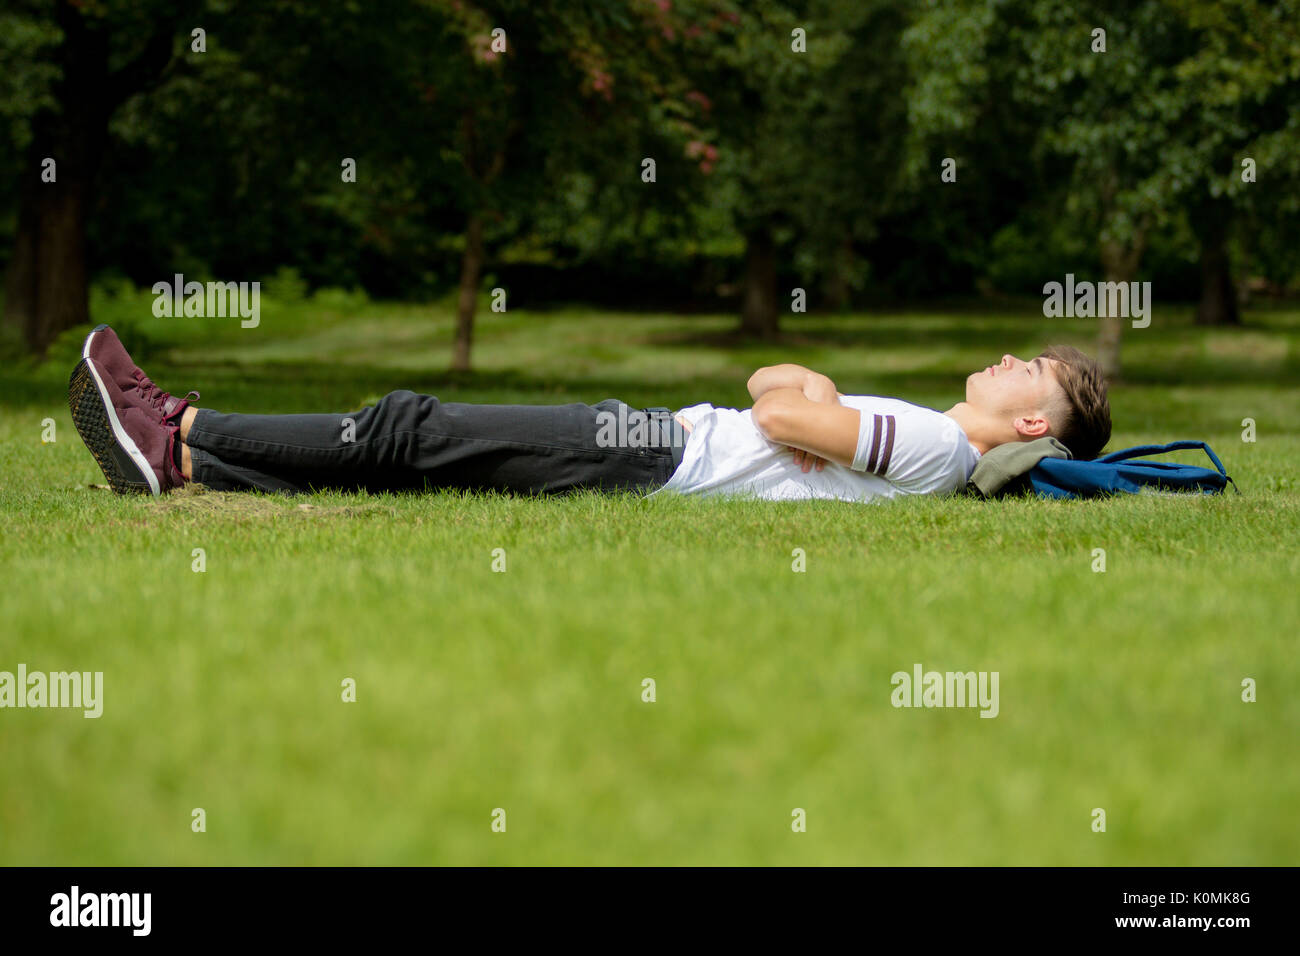 Boy Asleep On Grass Stock Photos Amp Boy Asleep On Grass